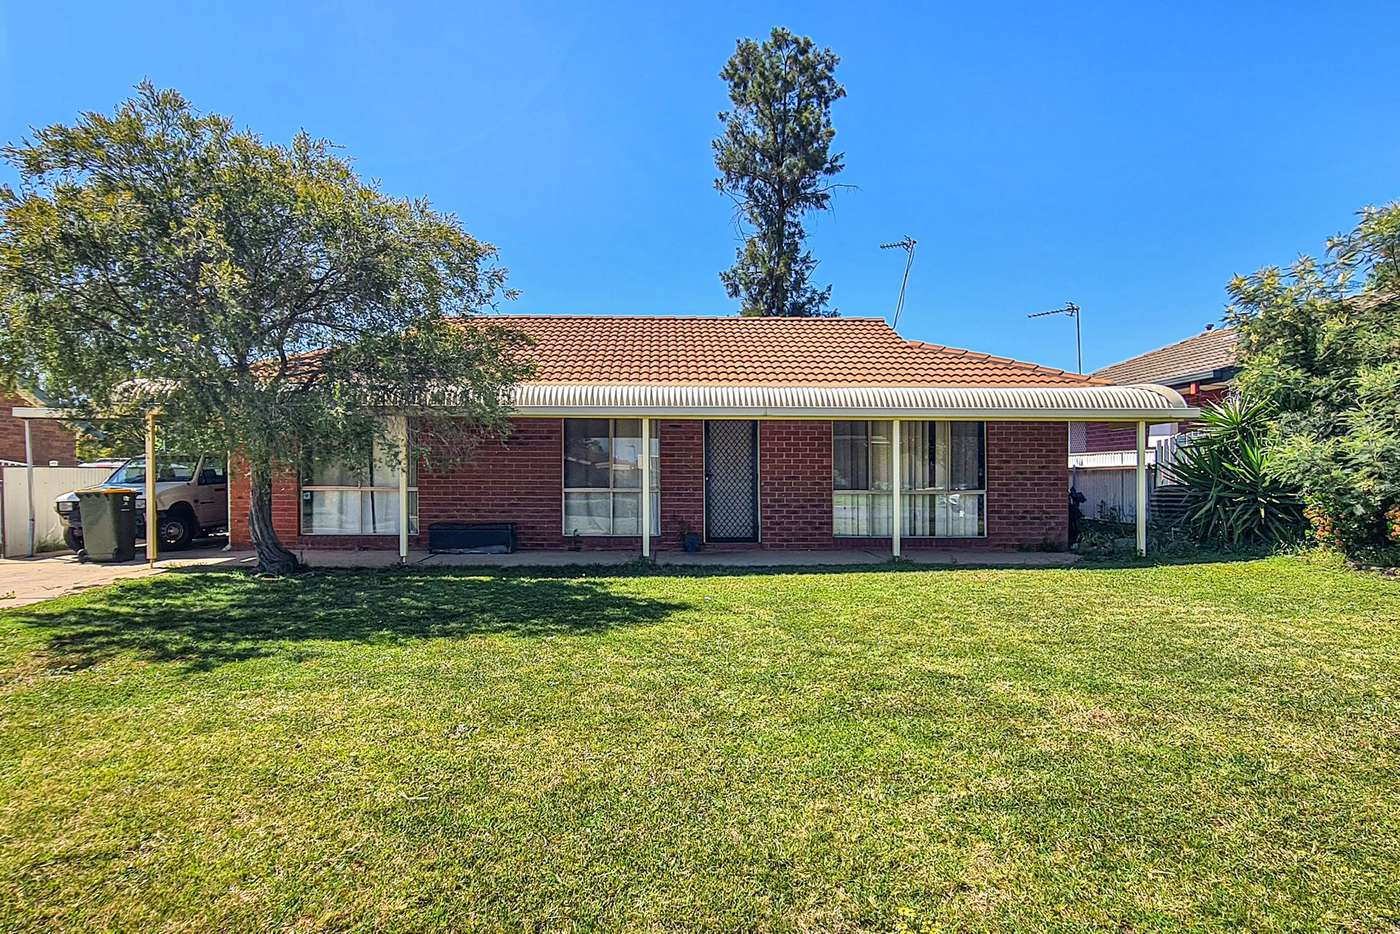 Main view of Homely house listing, 12 Lockett Place, Tolland NSW 2650